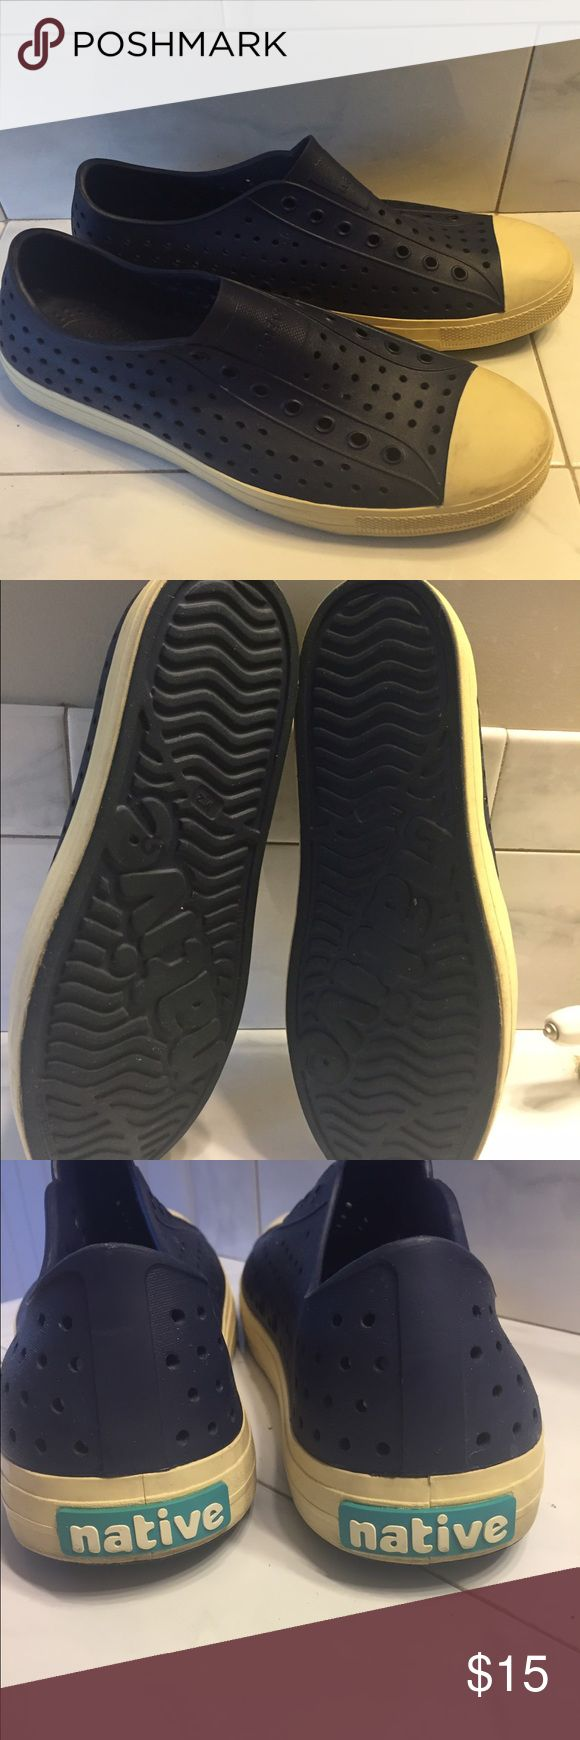 Native Brand navy blue men's 12 shoes Men's Native Brand waterproof slip on and go sneakers sz 12 great condition Native  Shoes Loafers & Slip-Ons